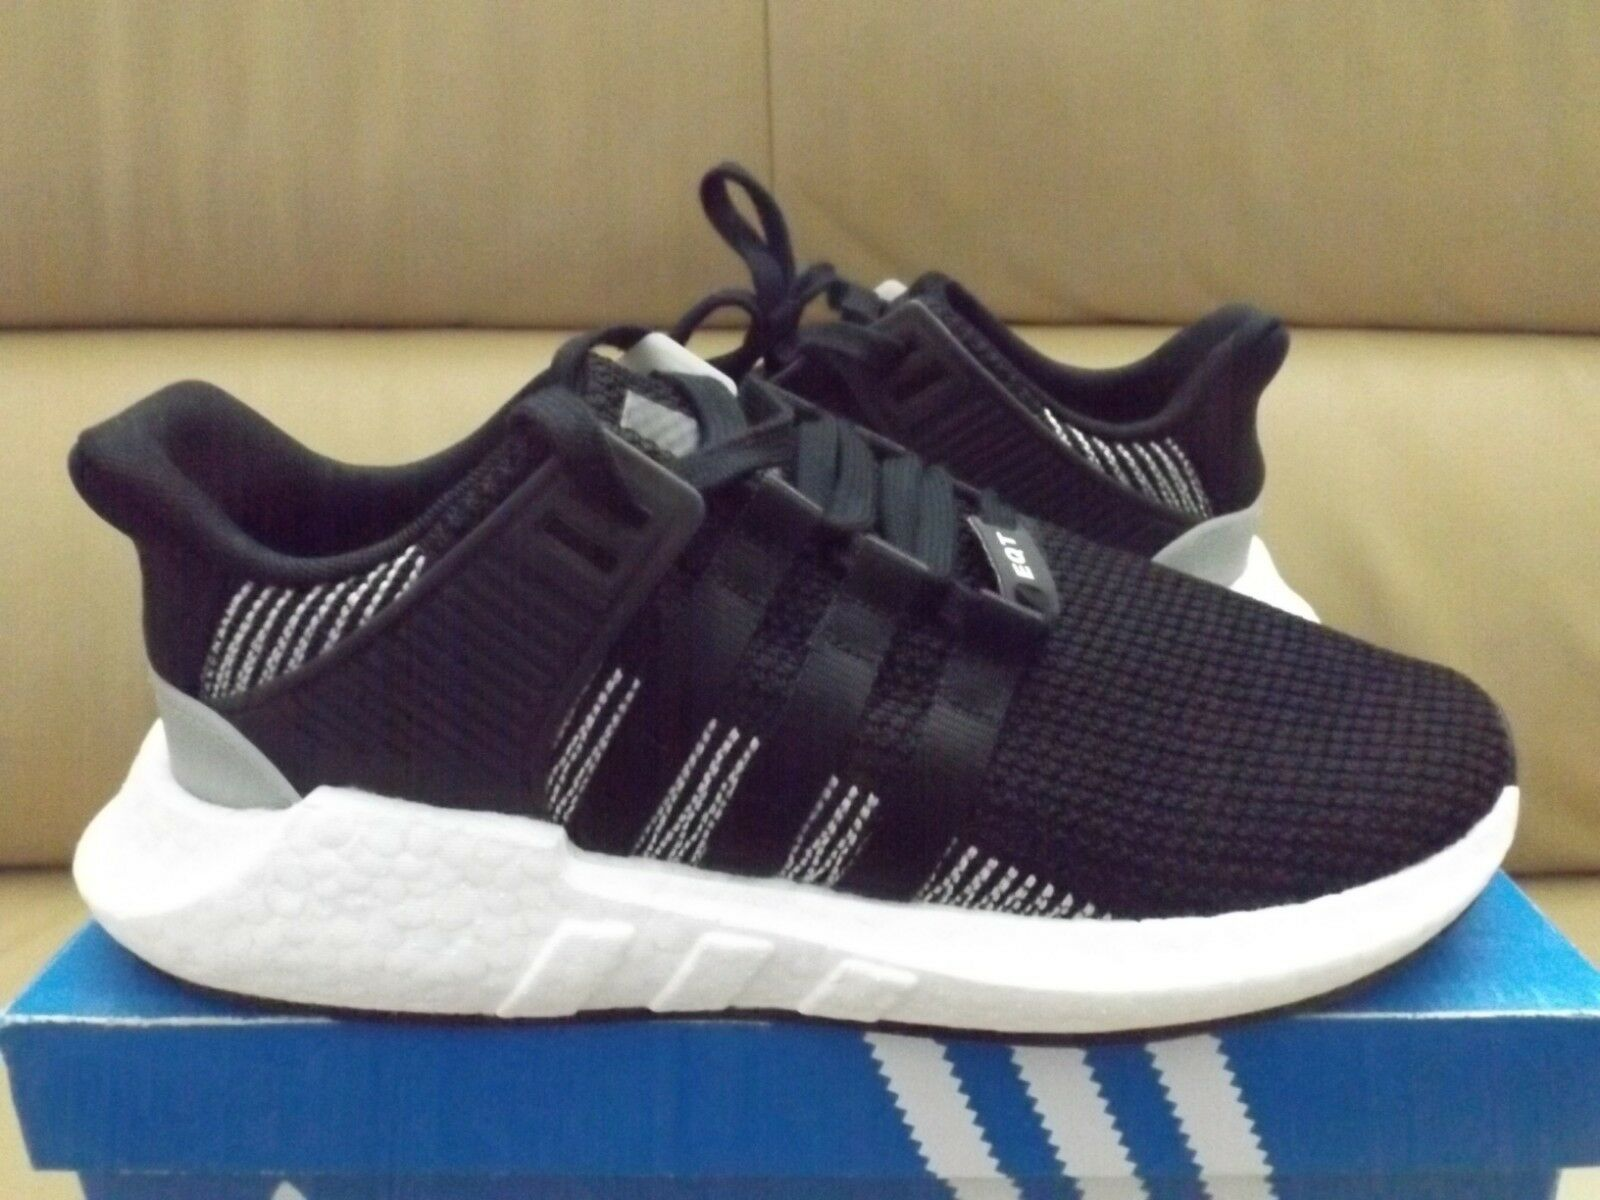 Adidas Originals EQT Support 93 17 Boost Men's shoes 9 Black White BY9509 NEW